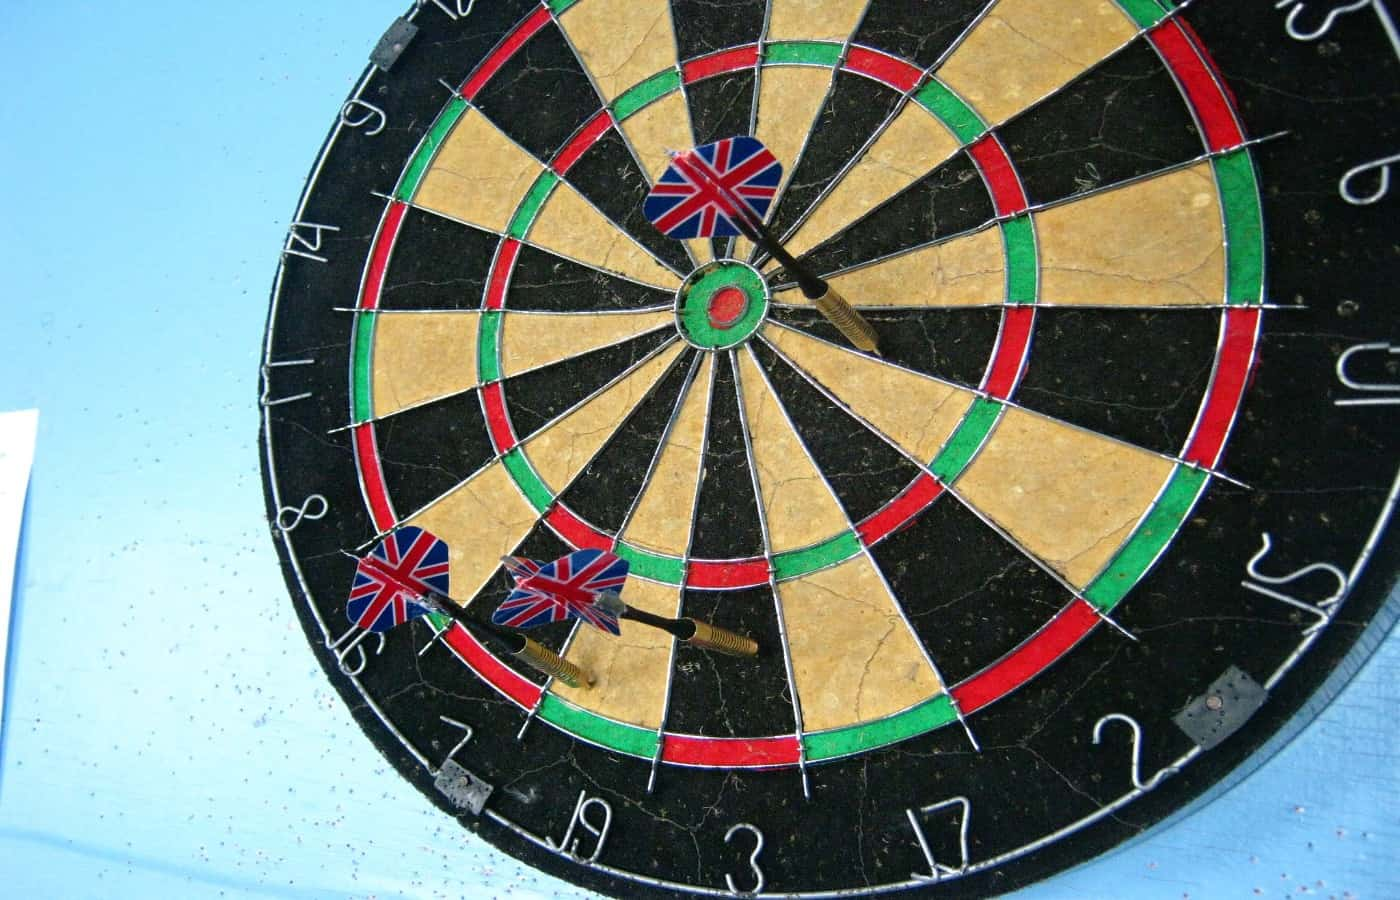 Why Is a Dartboard Made of Concentric Circles